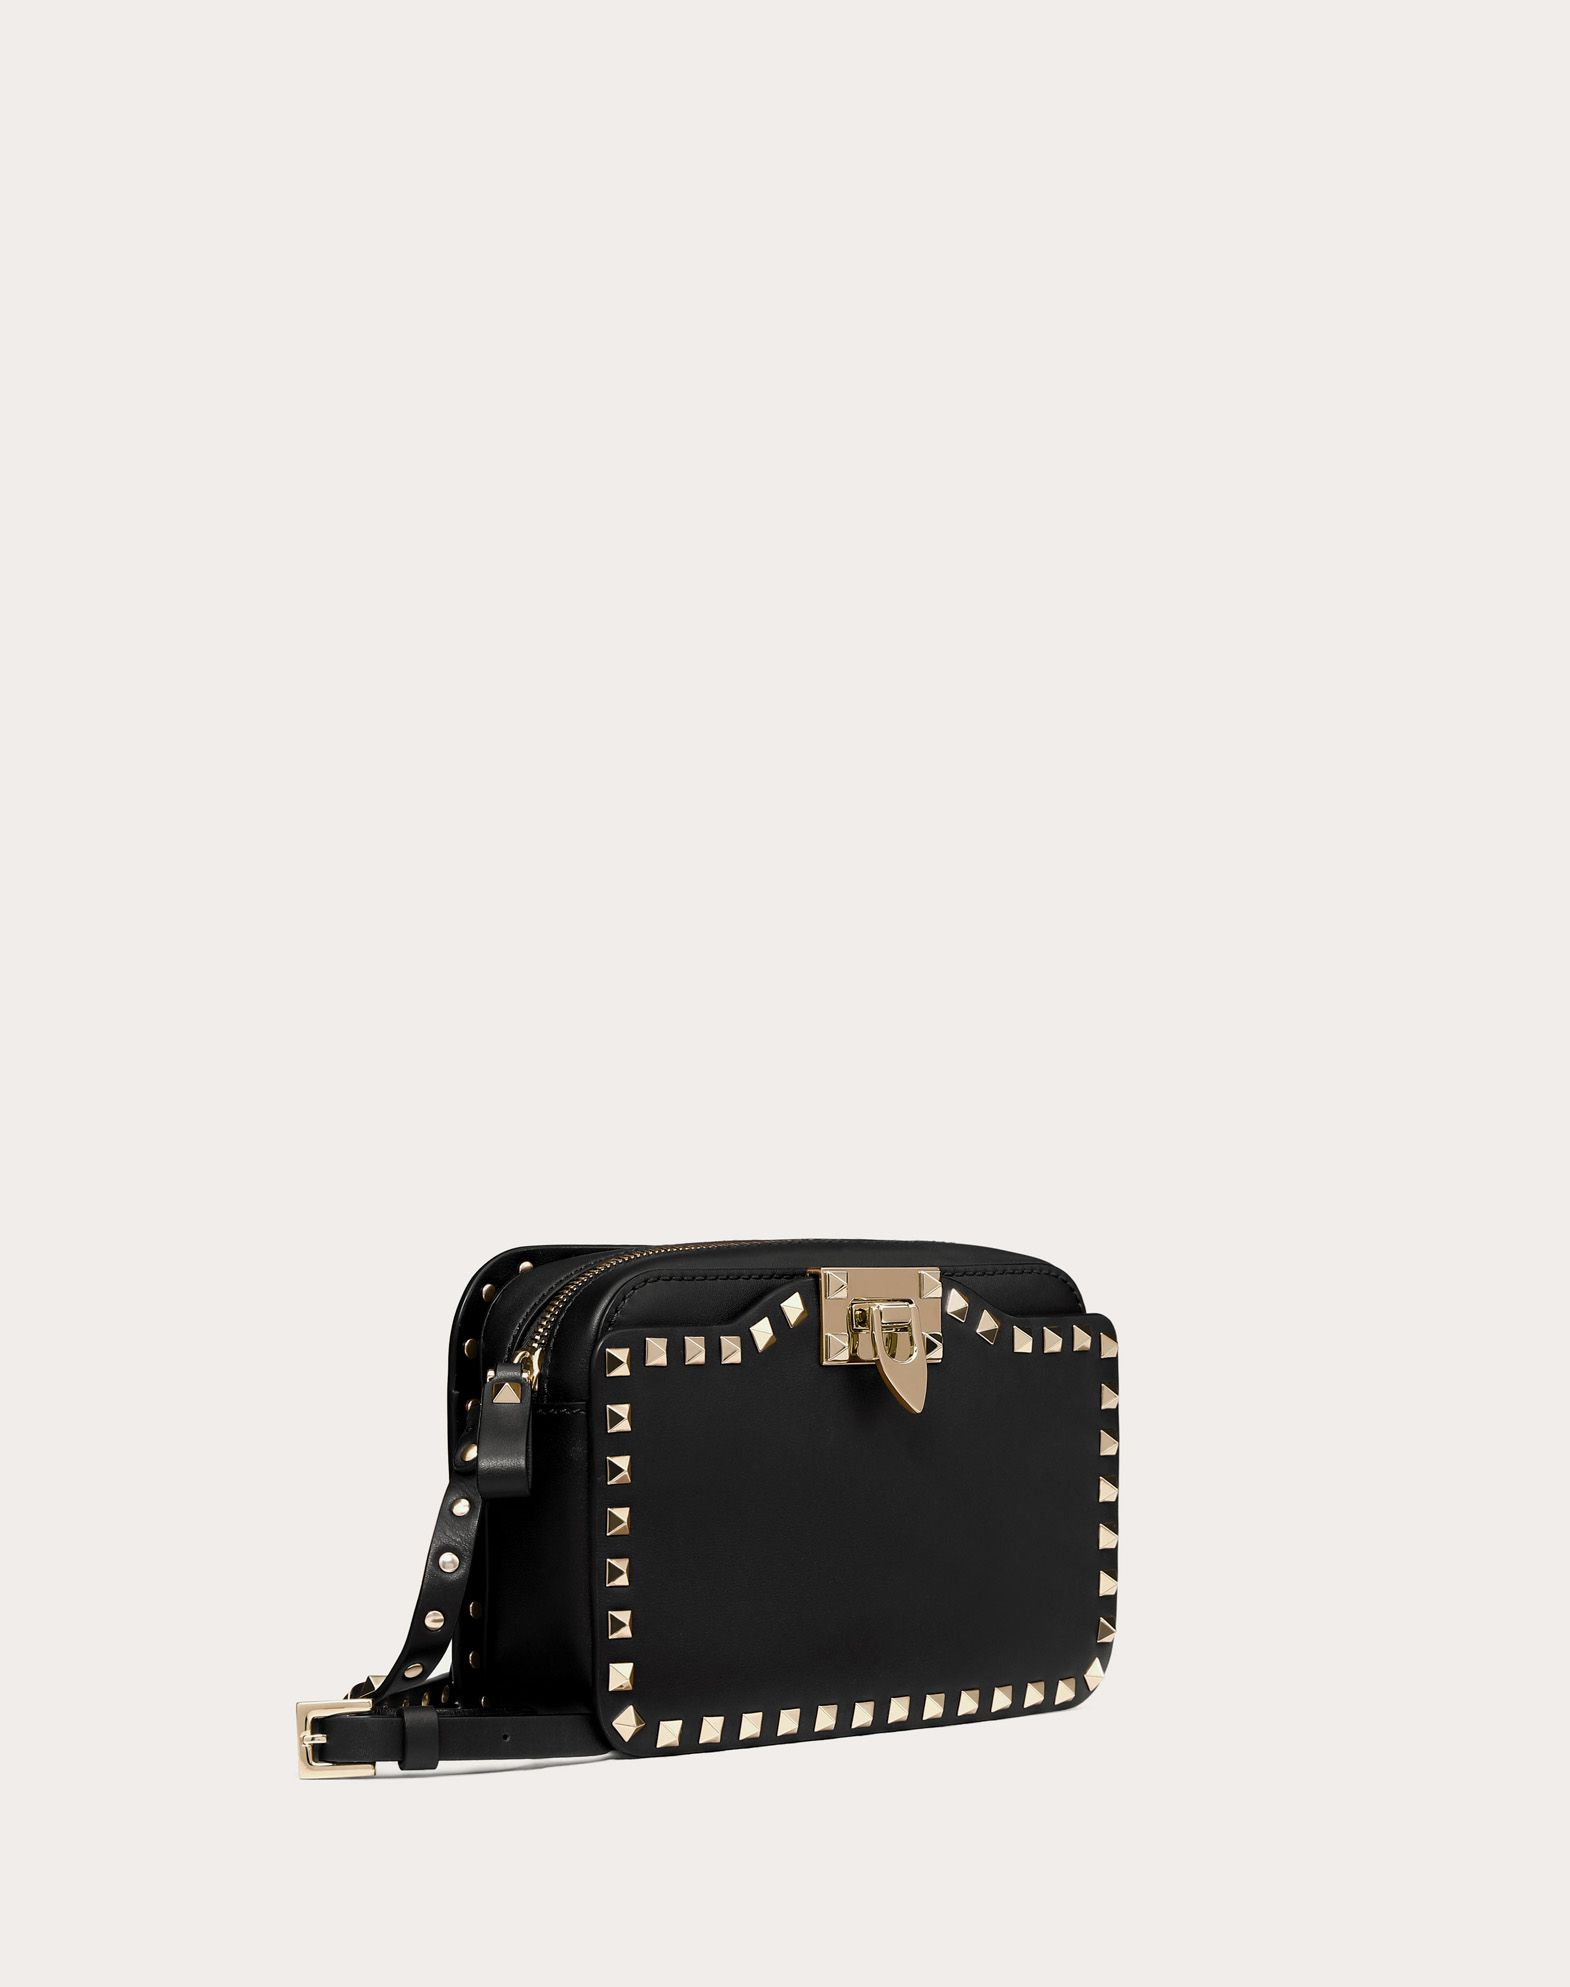 VALENTINO Studs Logo Solid color Zip closure External pockets Internal pocket Adjustable shoulder straps  45330973pj